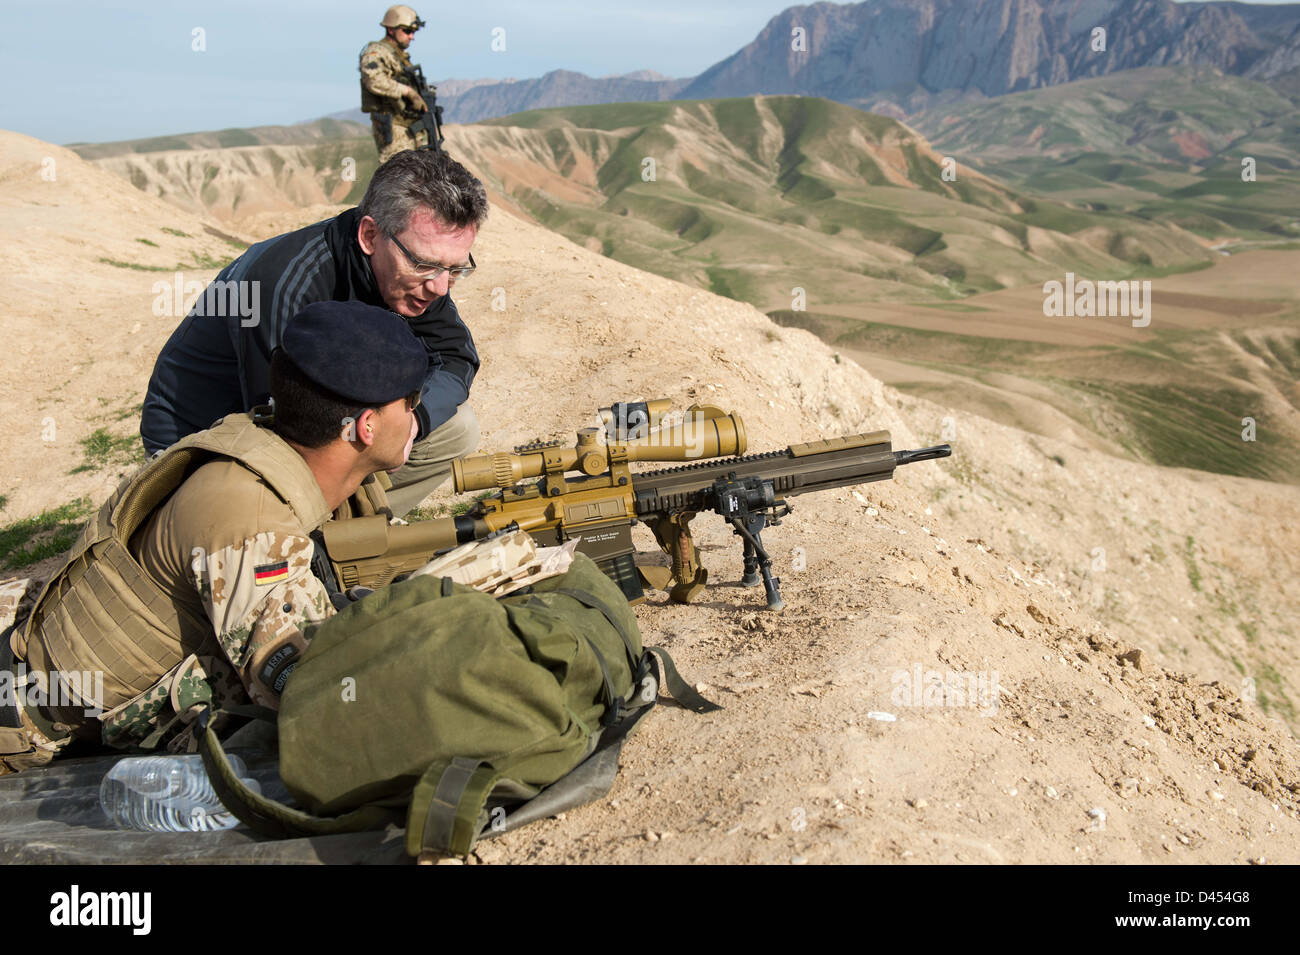 Afghanistan. 5th March 2013. German Defence Minister Thomas de Maiziere talks with soldiers at OP North near Mazar - Stock Image